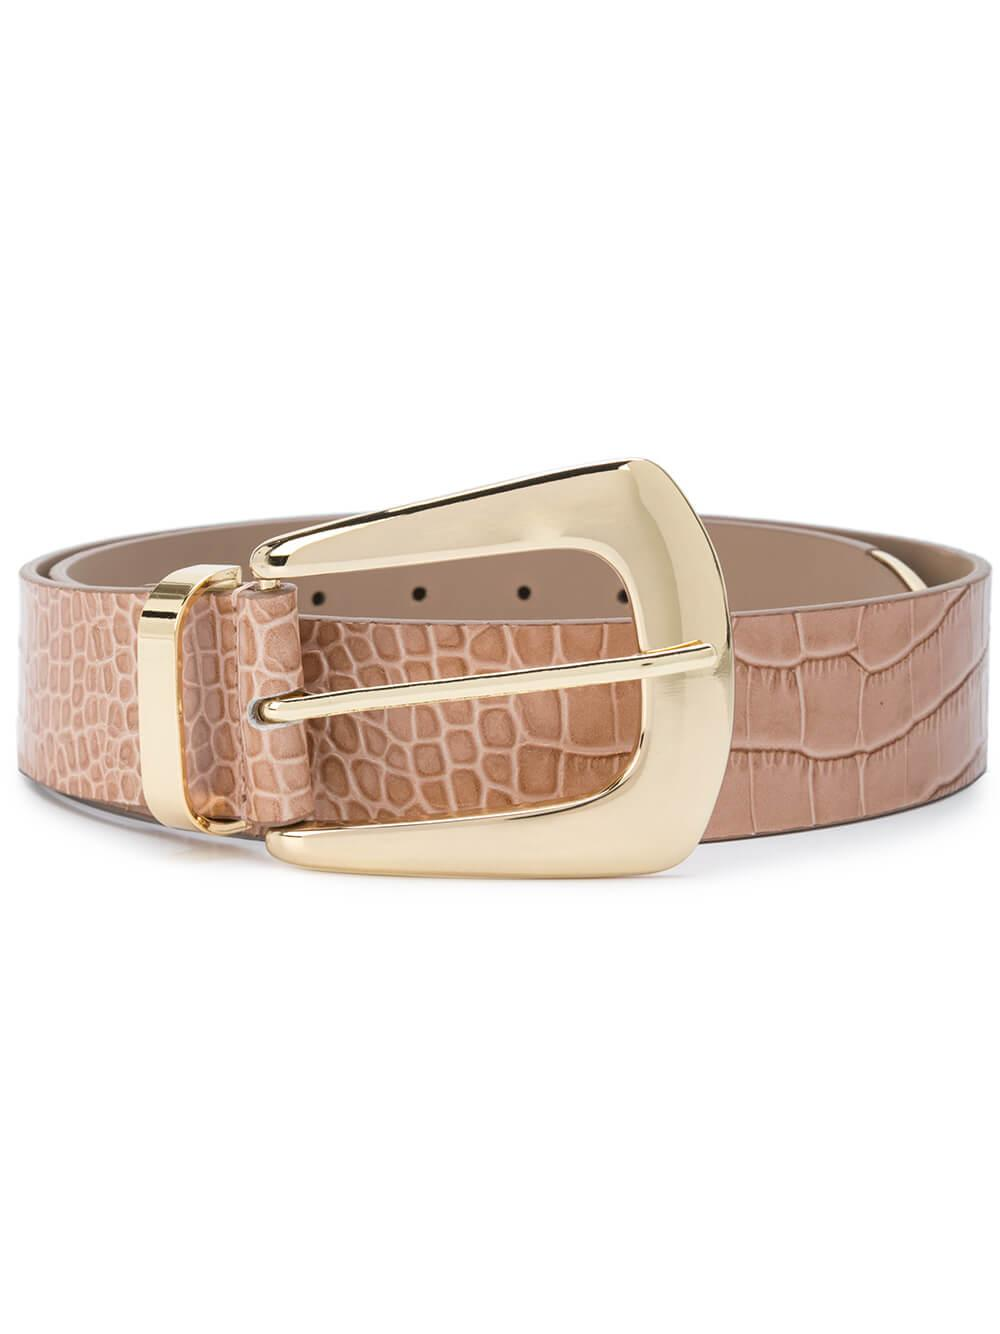 Jordana Mini Croco Belt